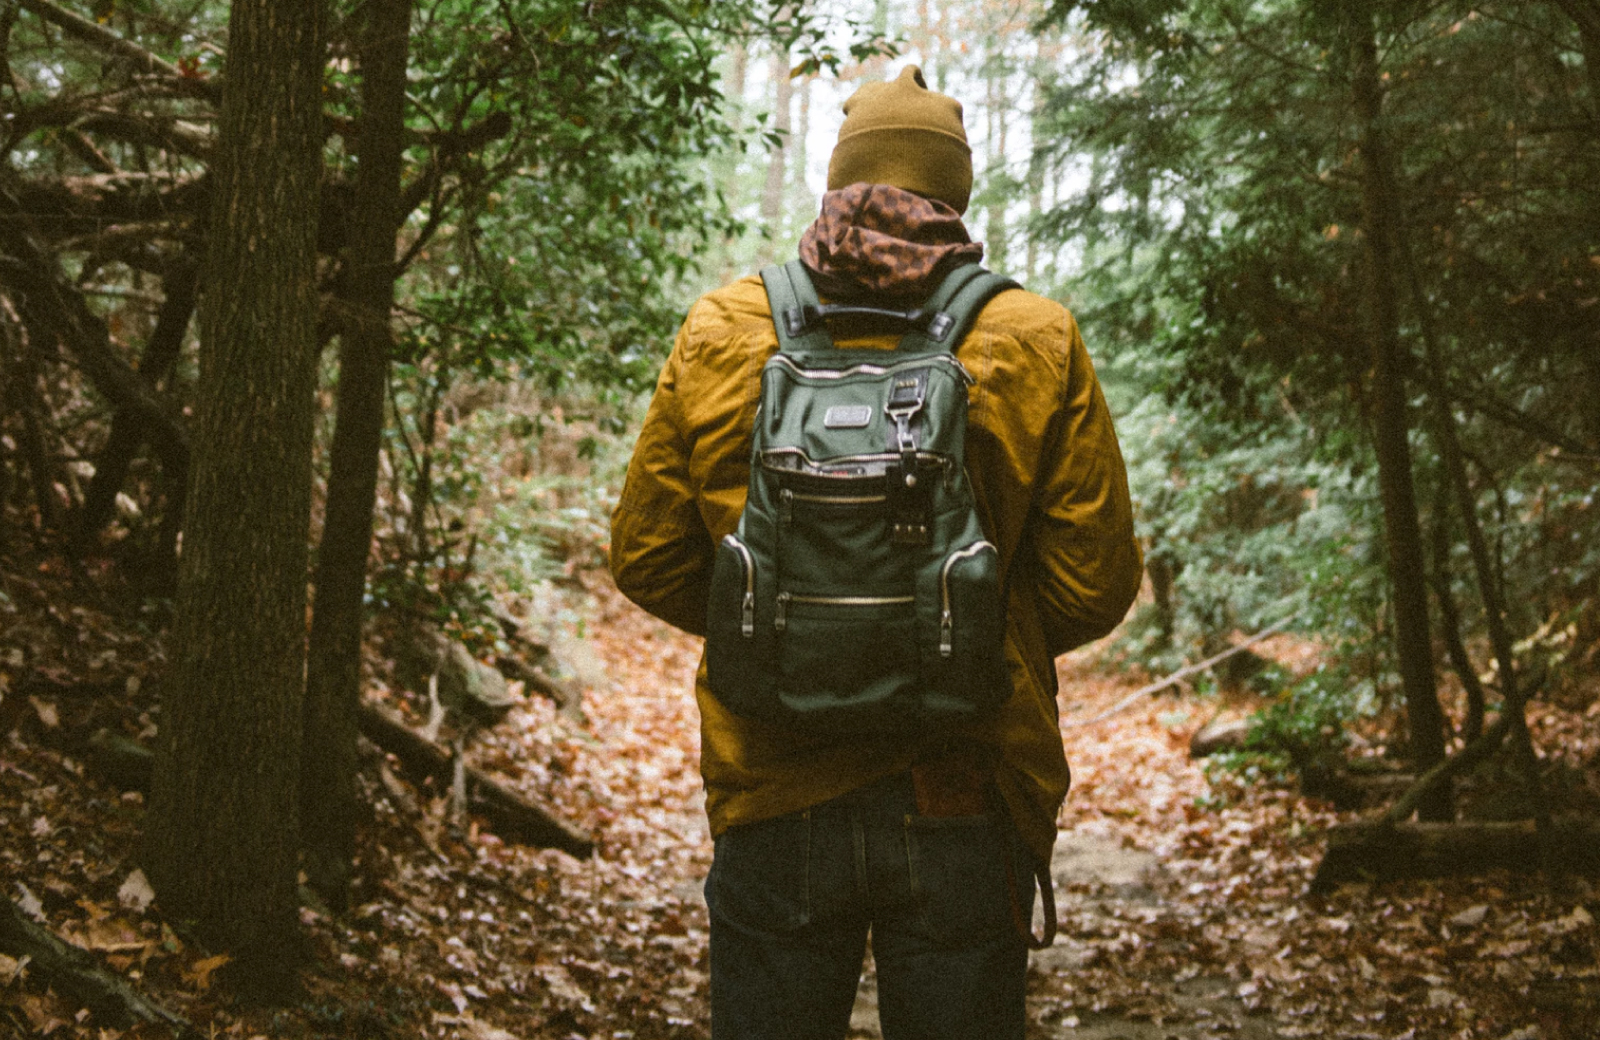 man with a backpack hiking in the forest the vintage pleasanton